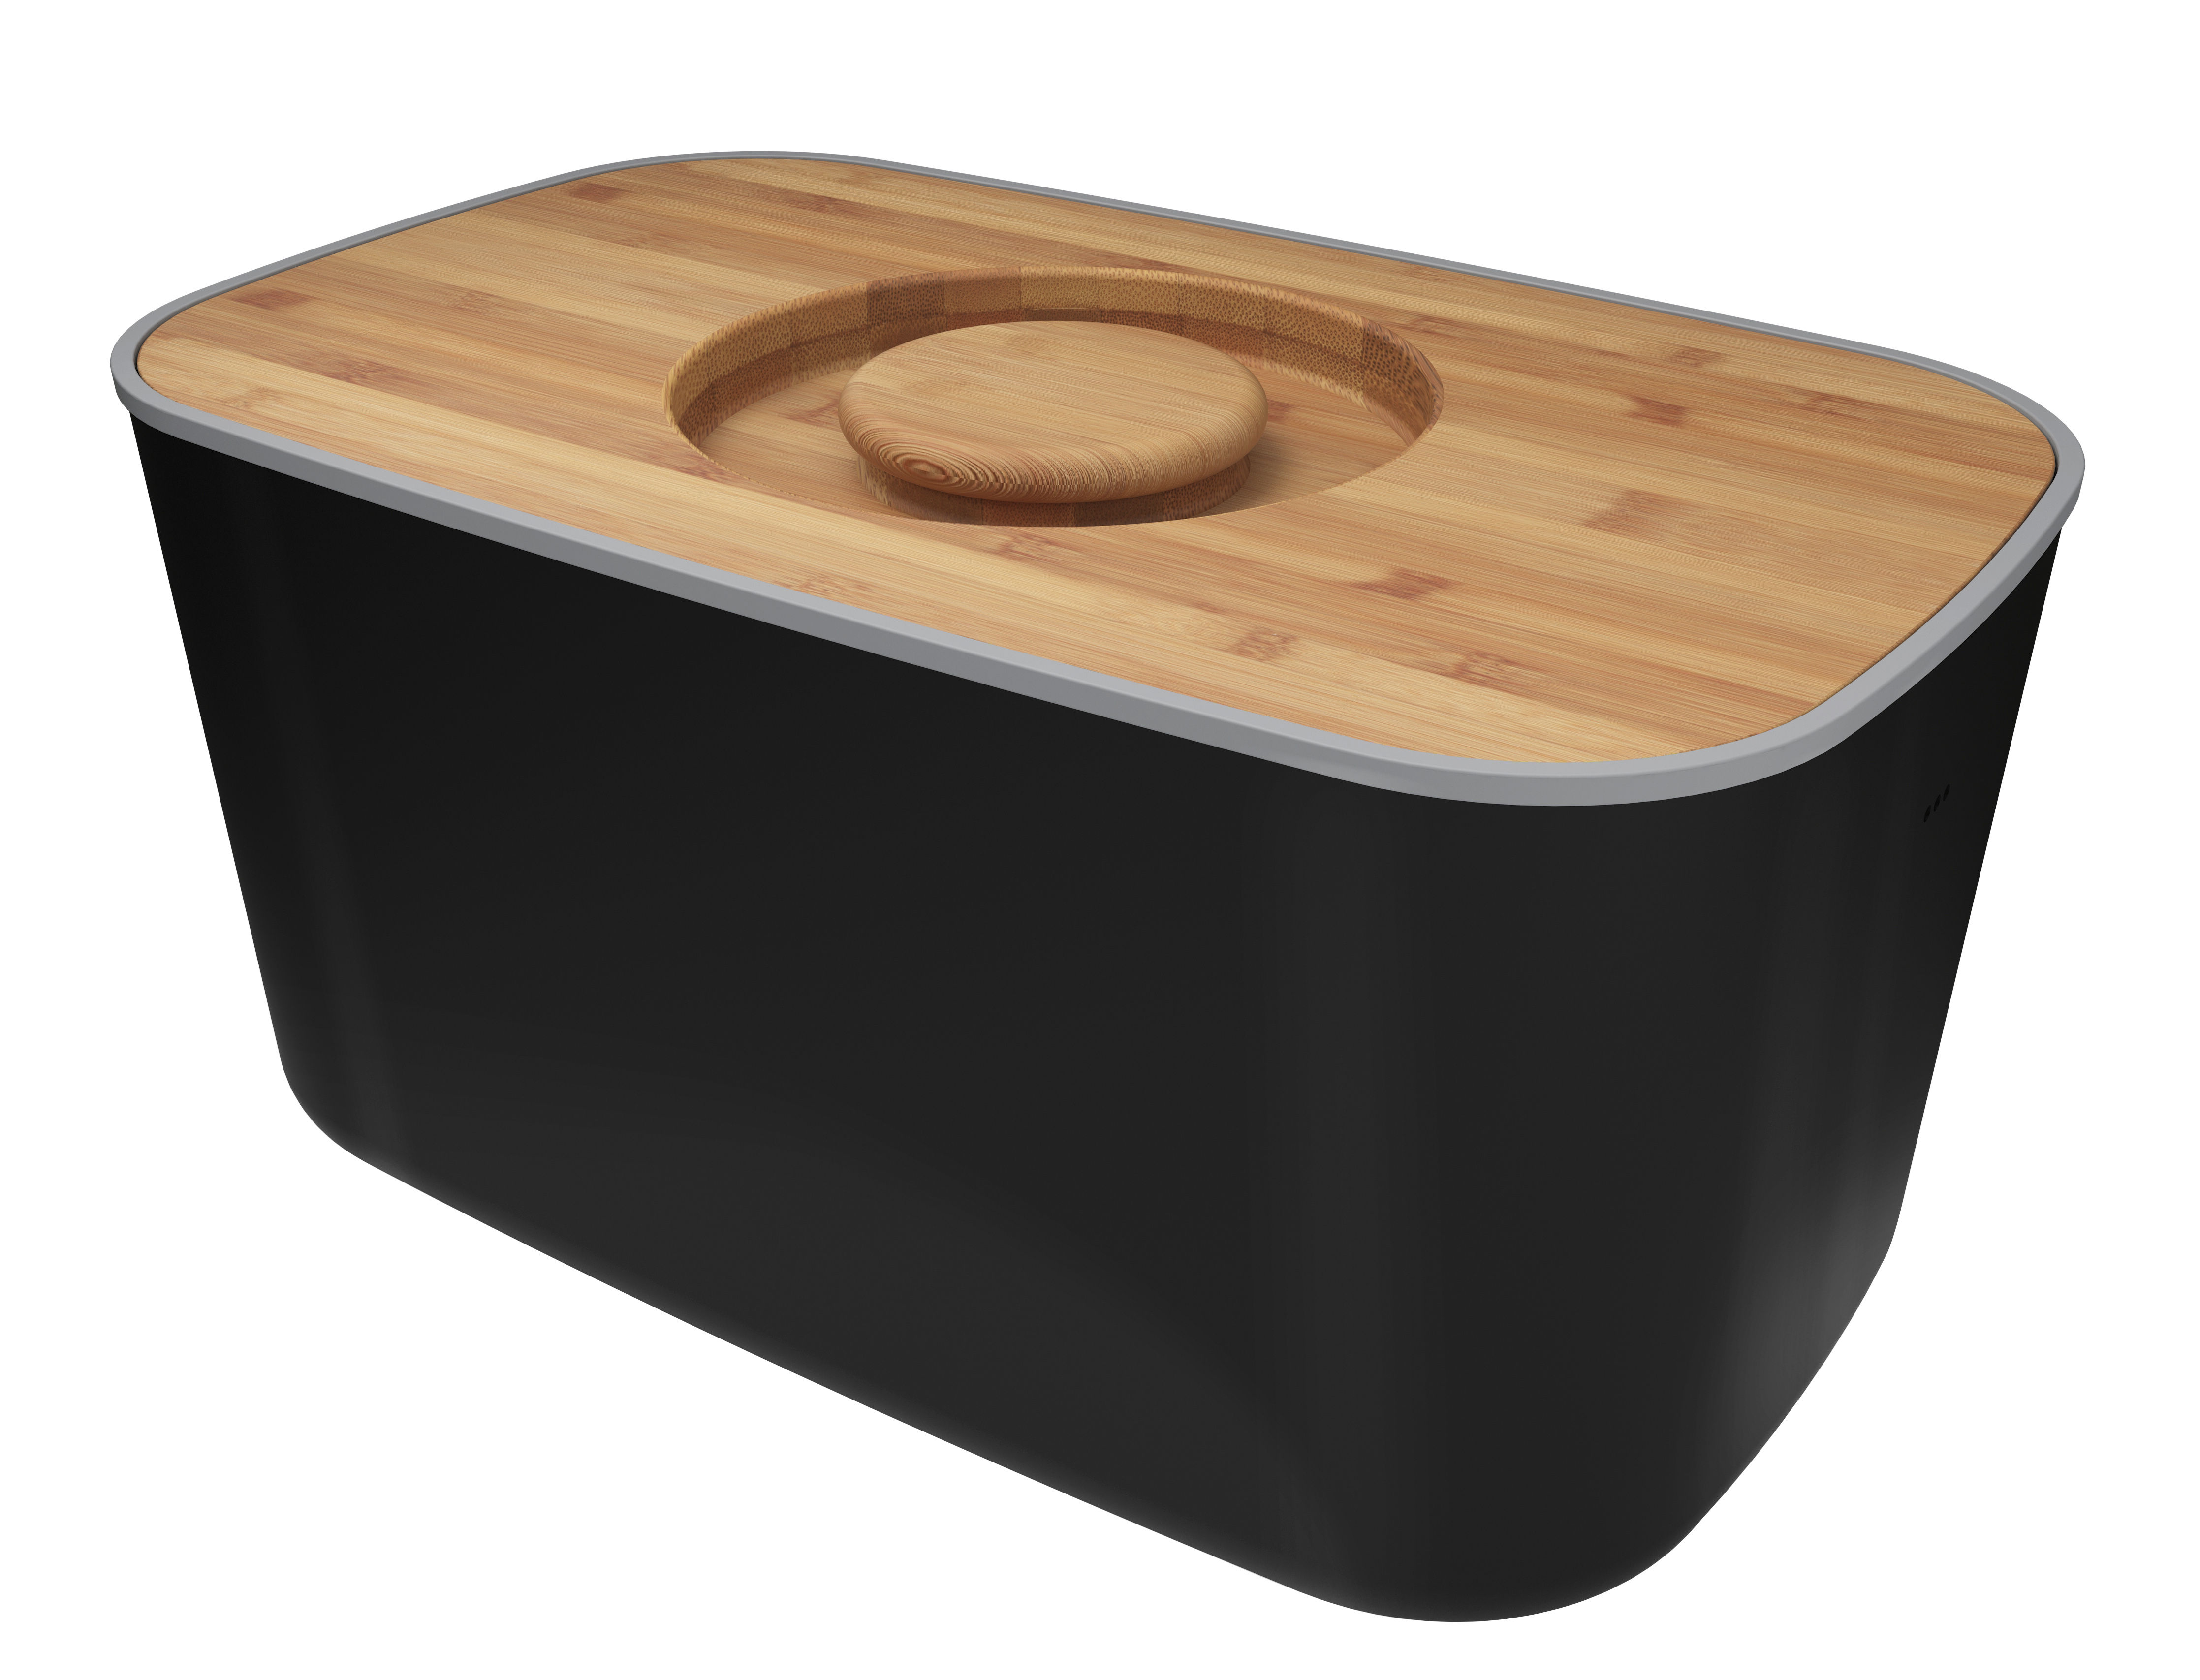 Kitchenware - Kitchen Equipment - Bread box - Cutting board-lid by Joseph Joseph - Black / Bamboo - Bamboo, Stainless steel